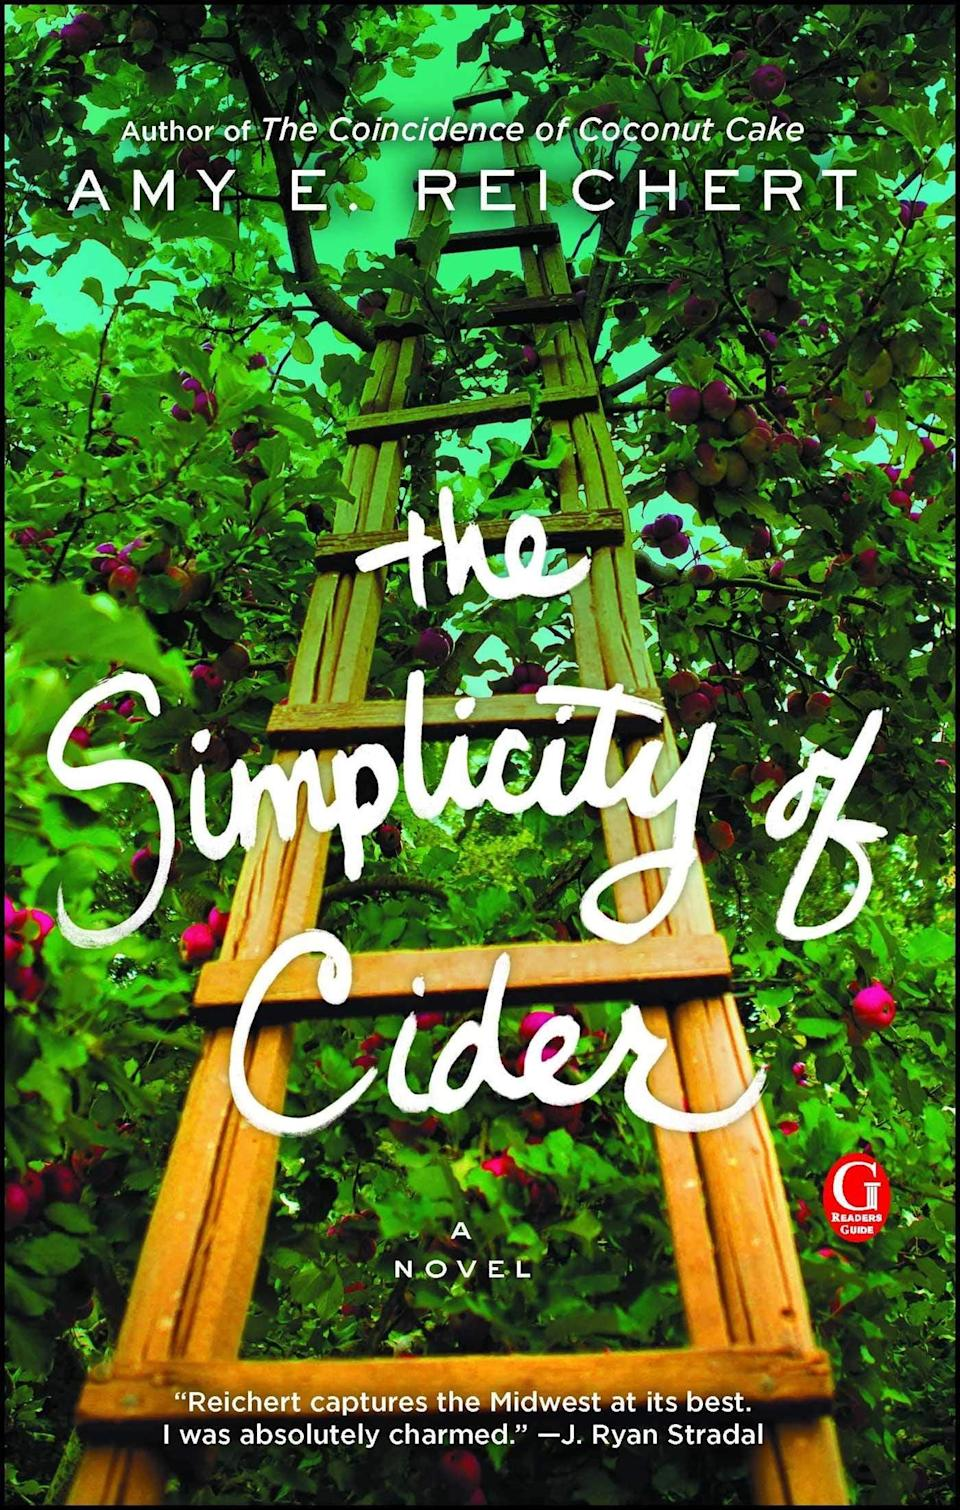 <p>Amy E. Reichert's <span><strong>The Simplicity of Cider</strong></span> pairs perfectly with the beverage in the title. Sanna Lund is great at working on her family's orchard, but she's way less capable when it comes to interacting with people. However, when a handsome man and his son arrive to work on the farm, Sanna learns how to open her heart to something besides the soothing process of making apple cider.</p>